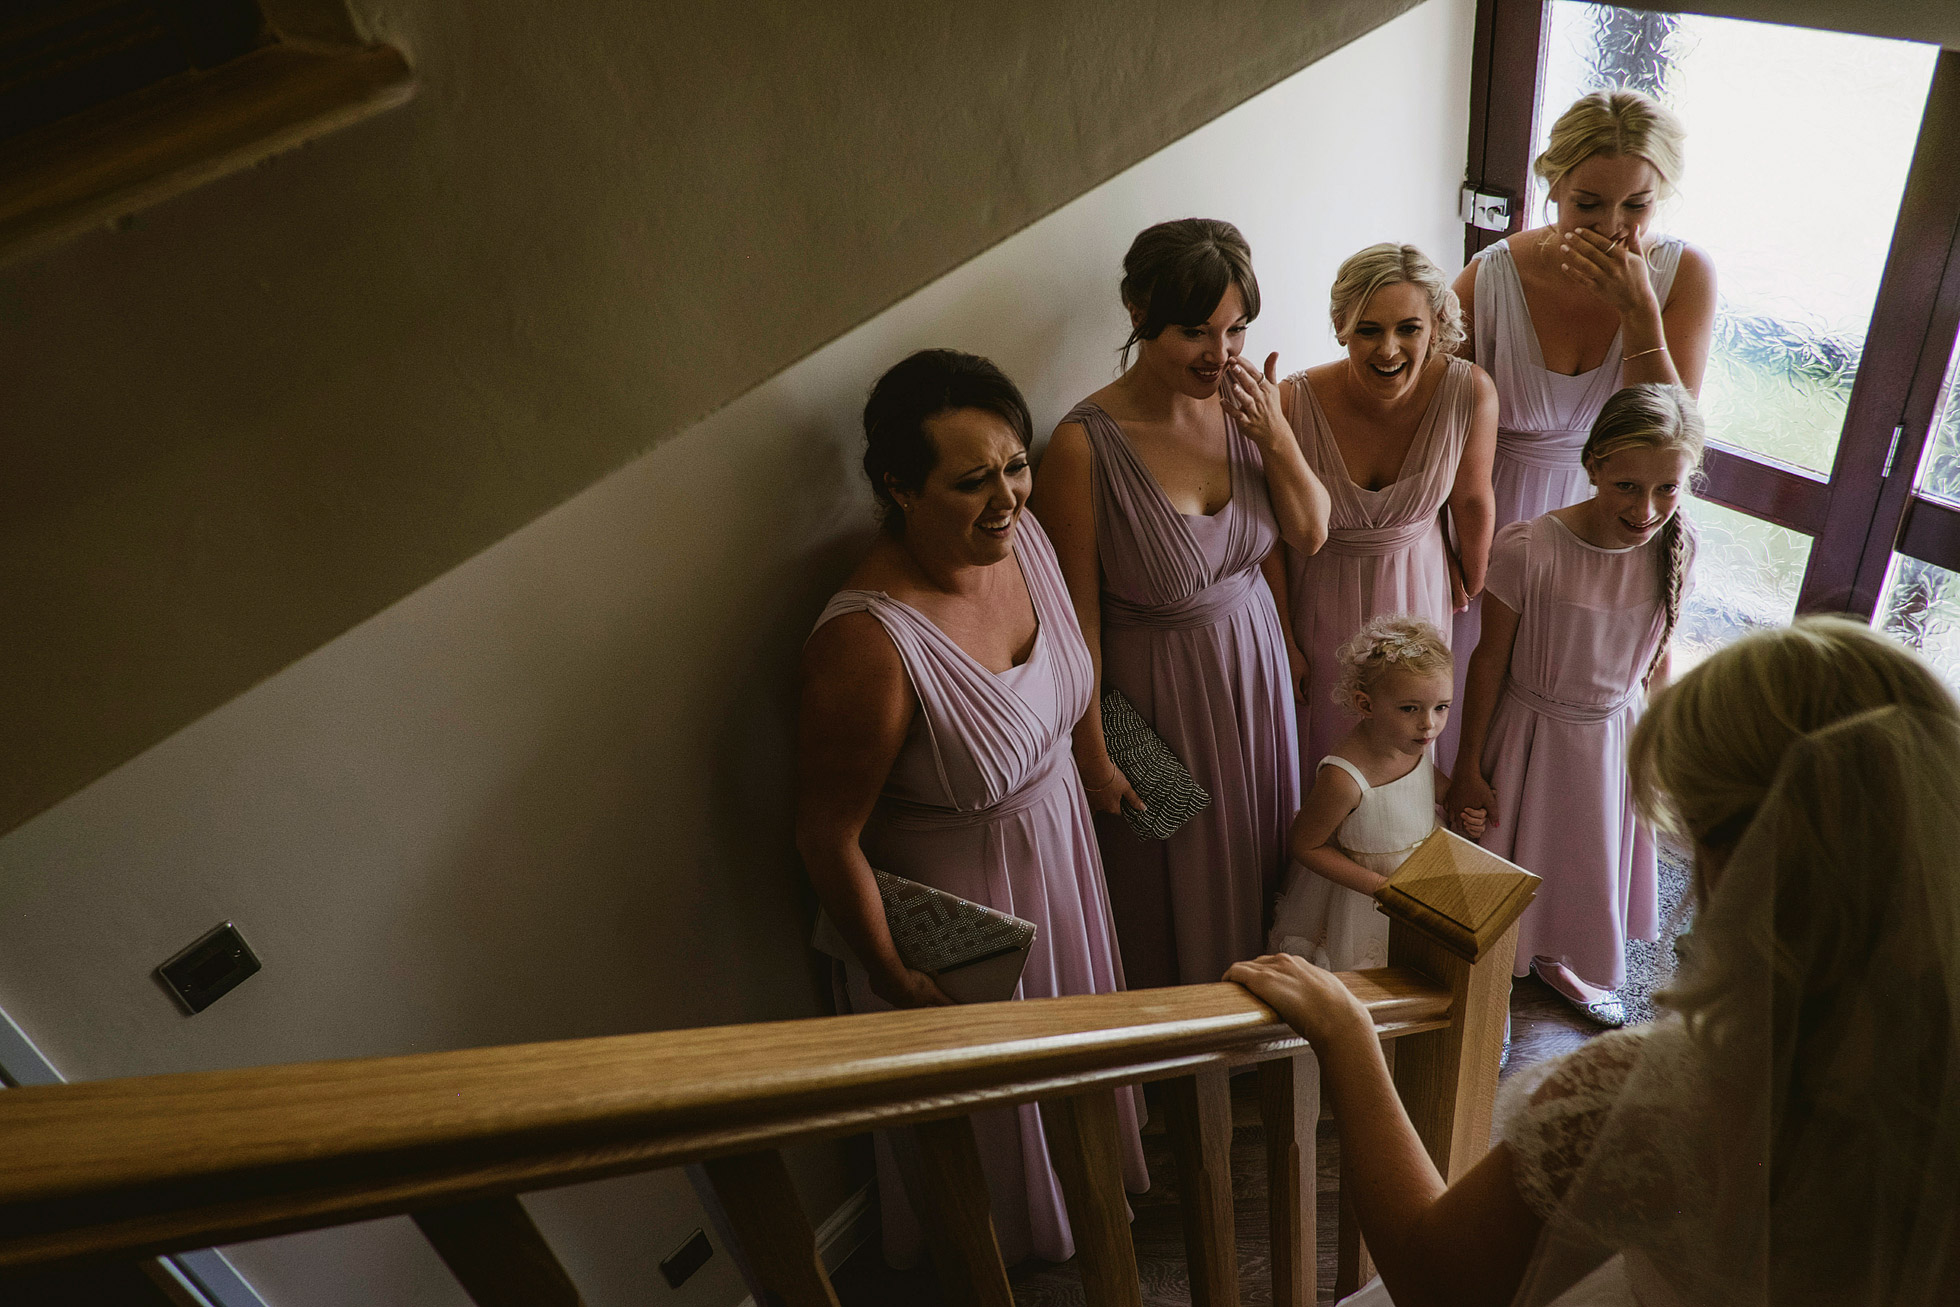 Reaction of the bridesmaids